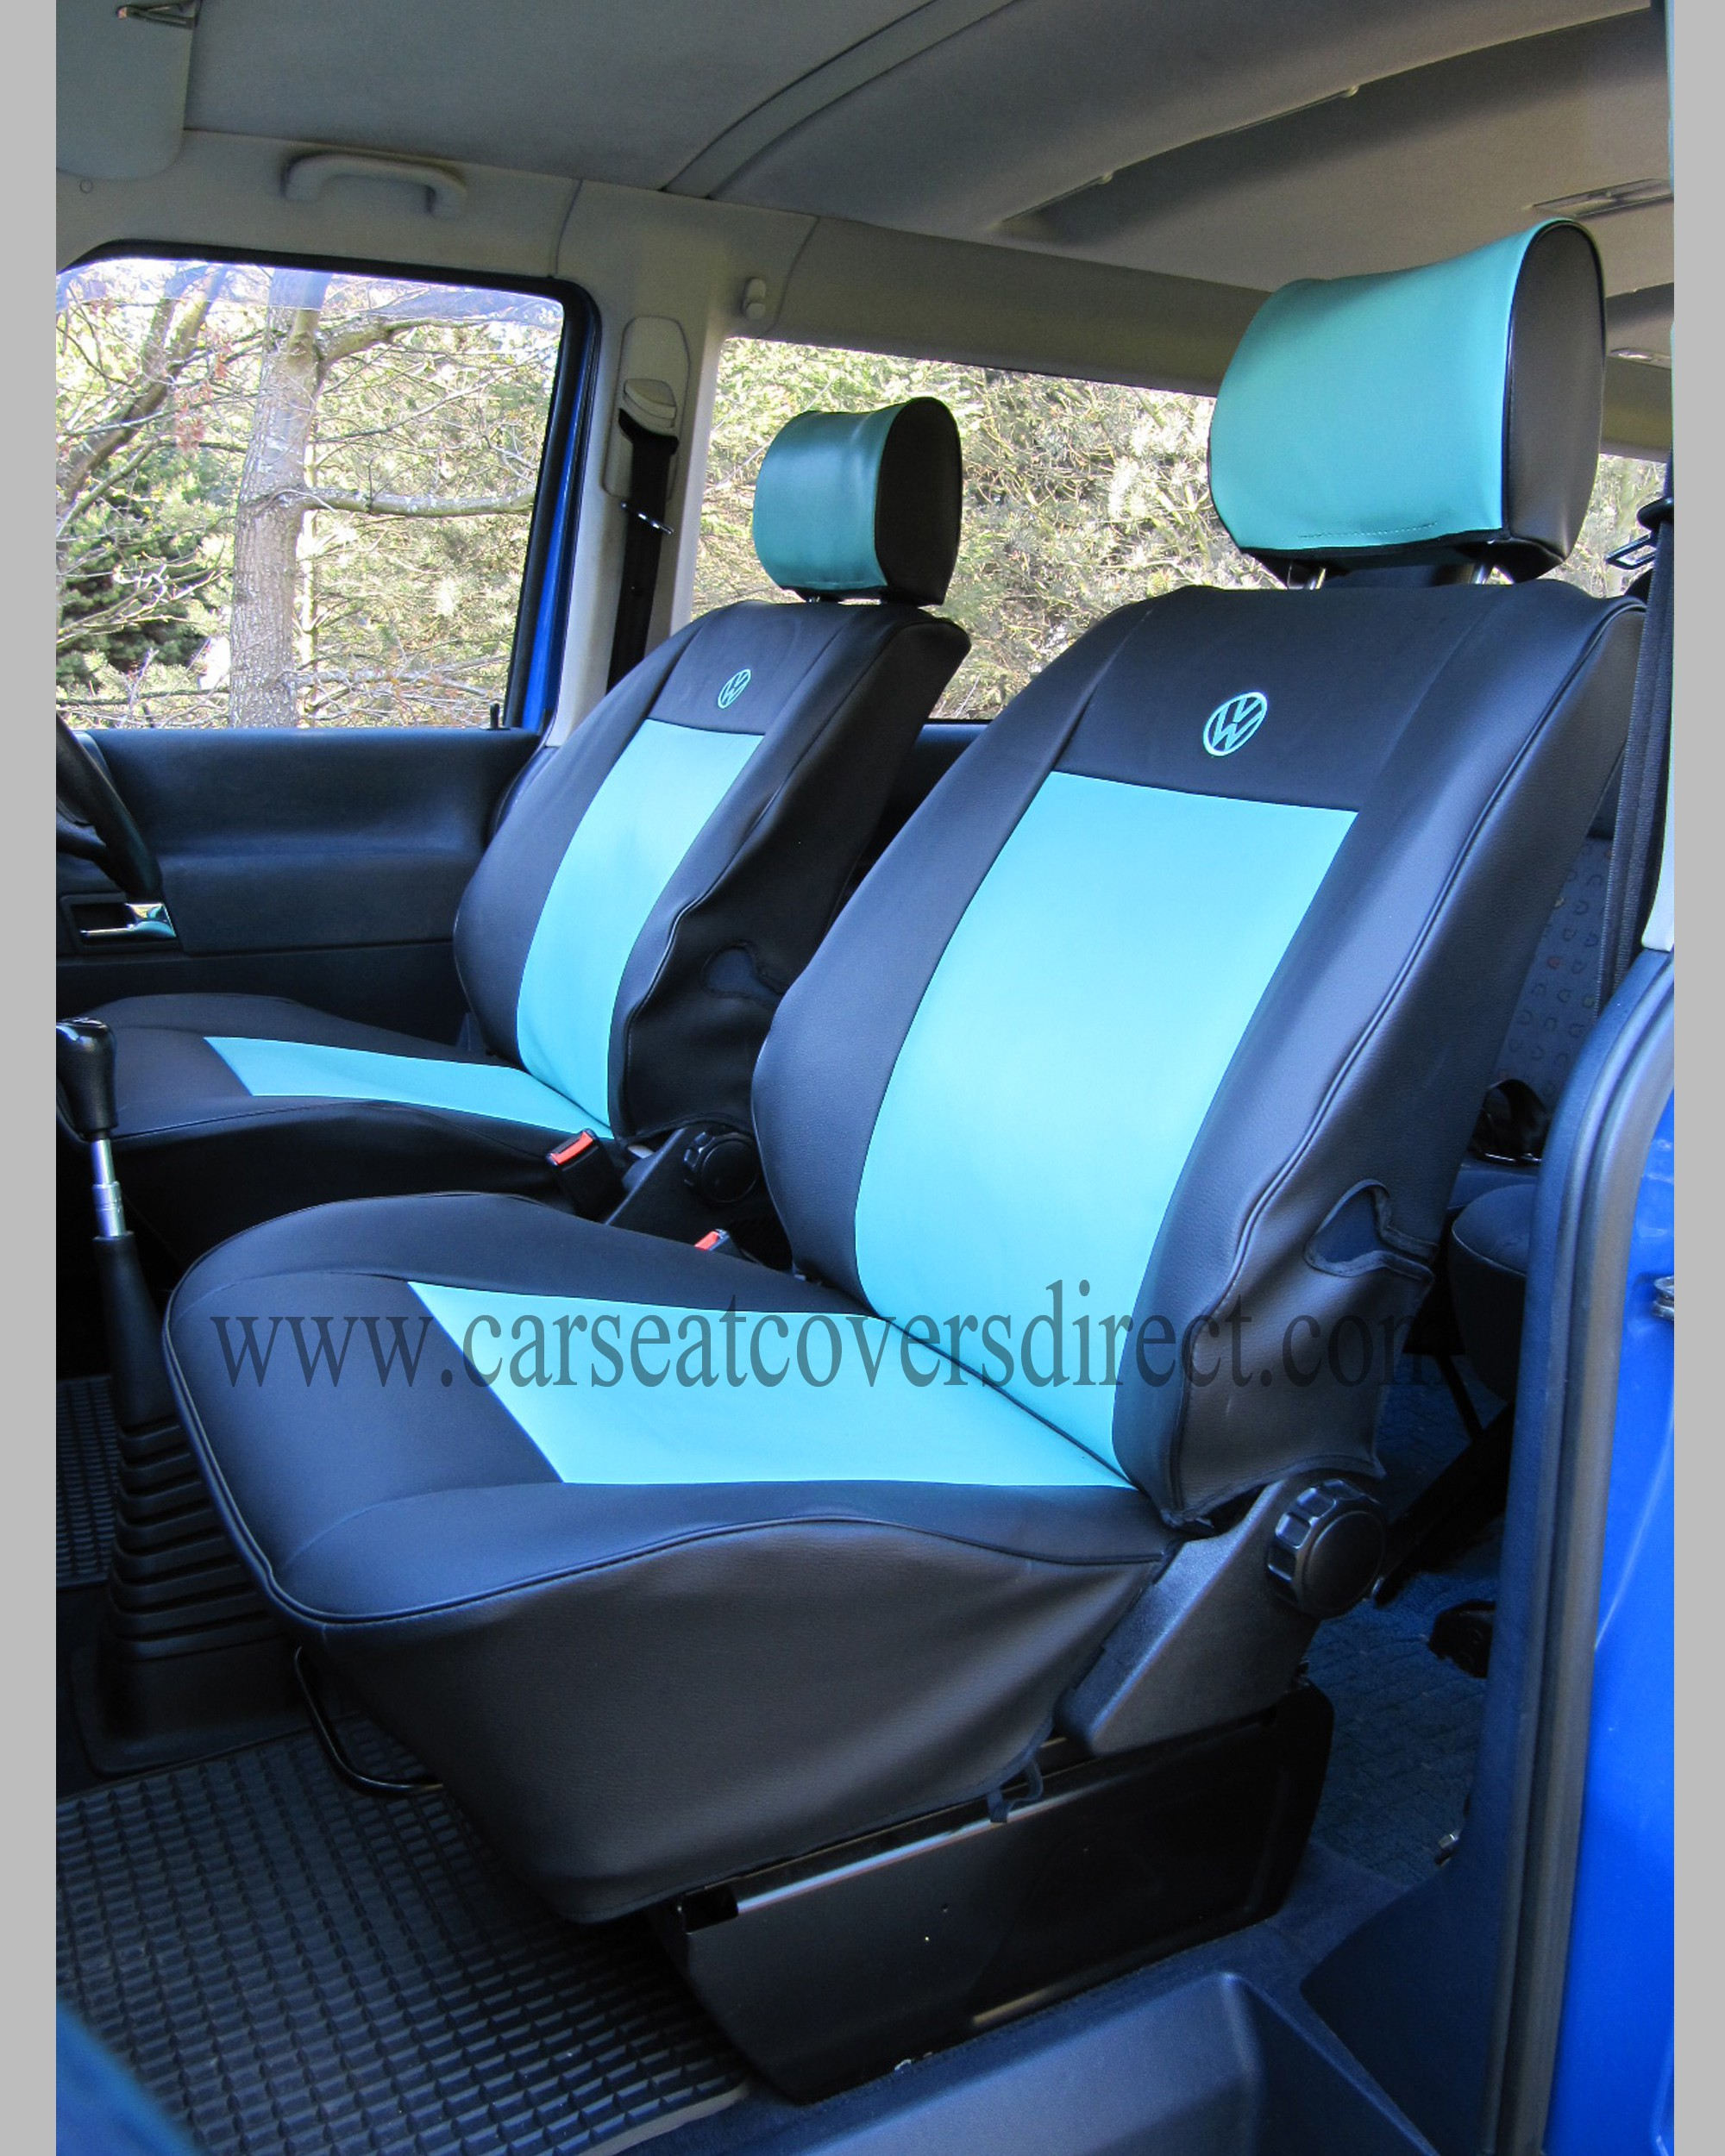 VOLKSWAGEN VW Transporter T4 Black & Blue Seat Covers